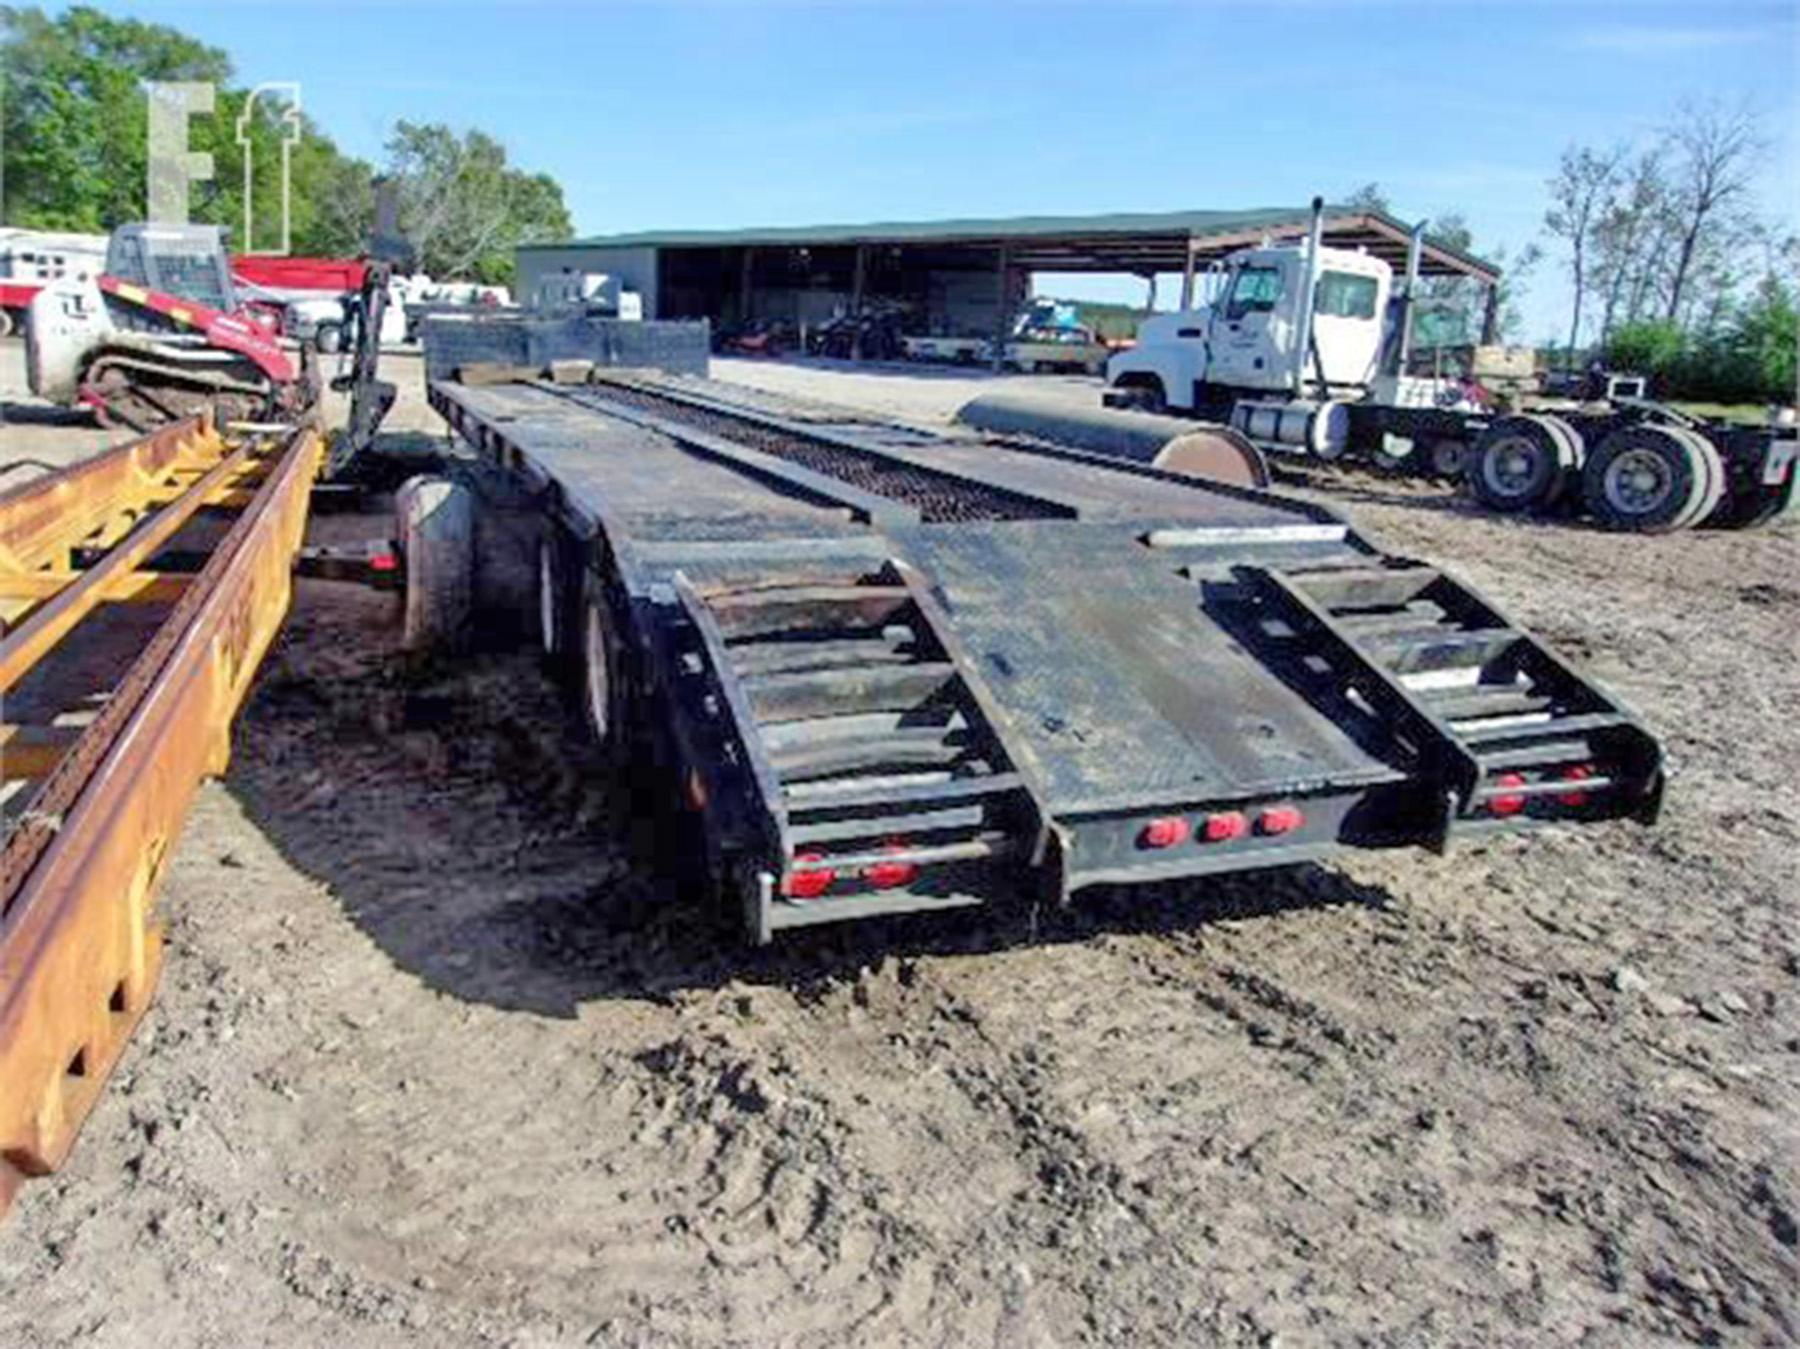 USED, 2018 HM LOWBOY TRAILER DOVETAIL WITH TITLE